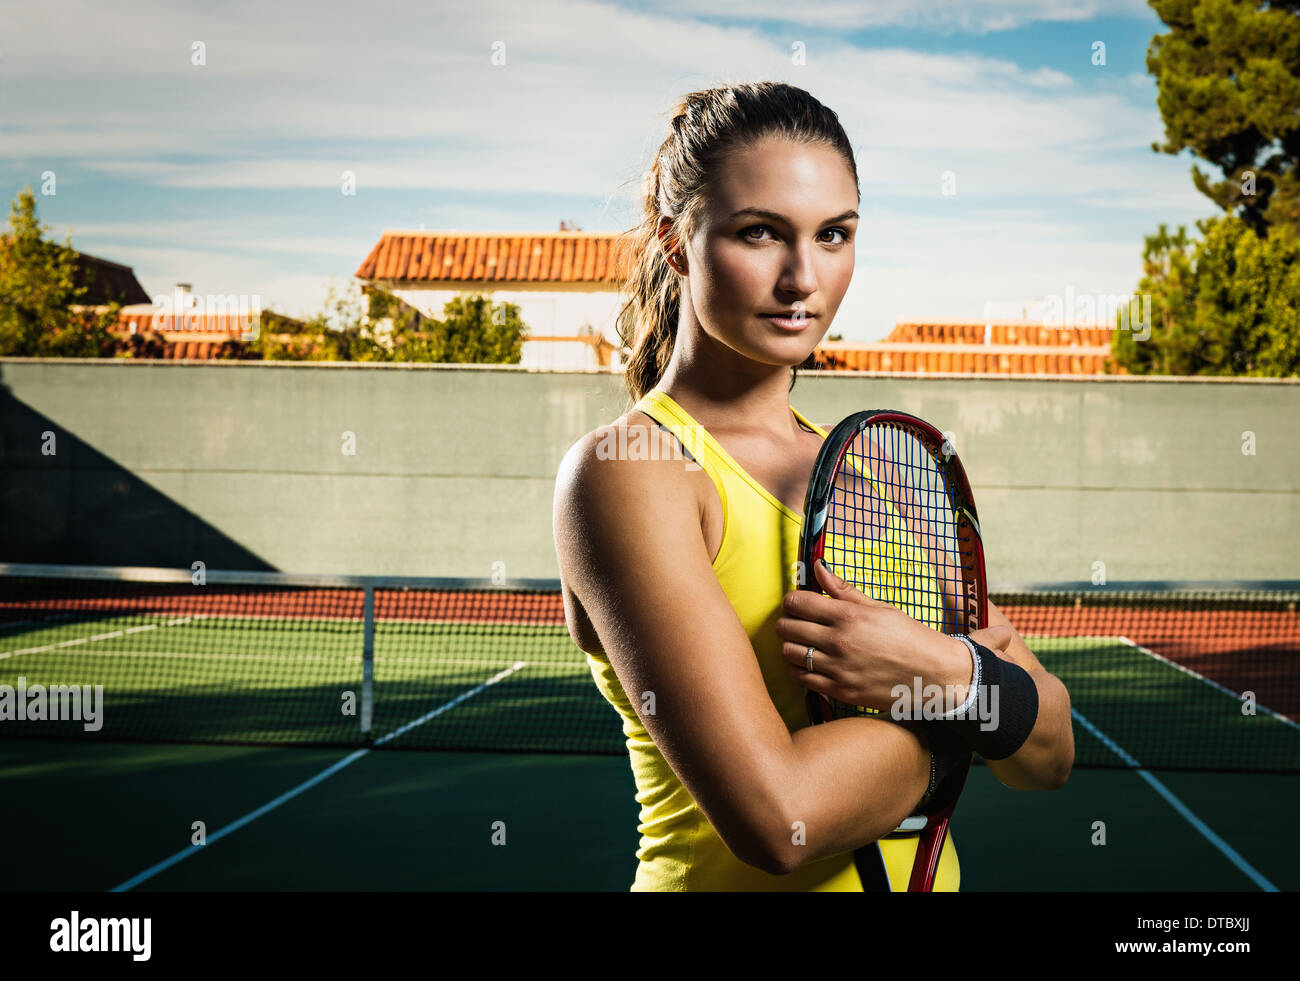 Tennis player holding racket Photo Stock